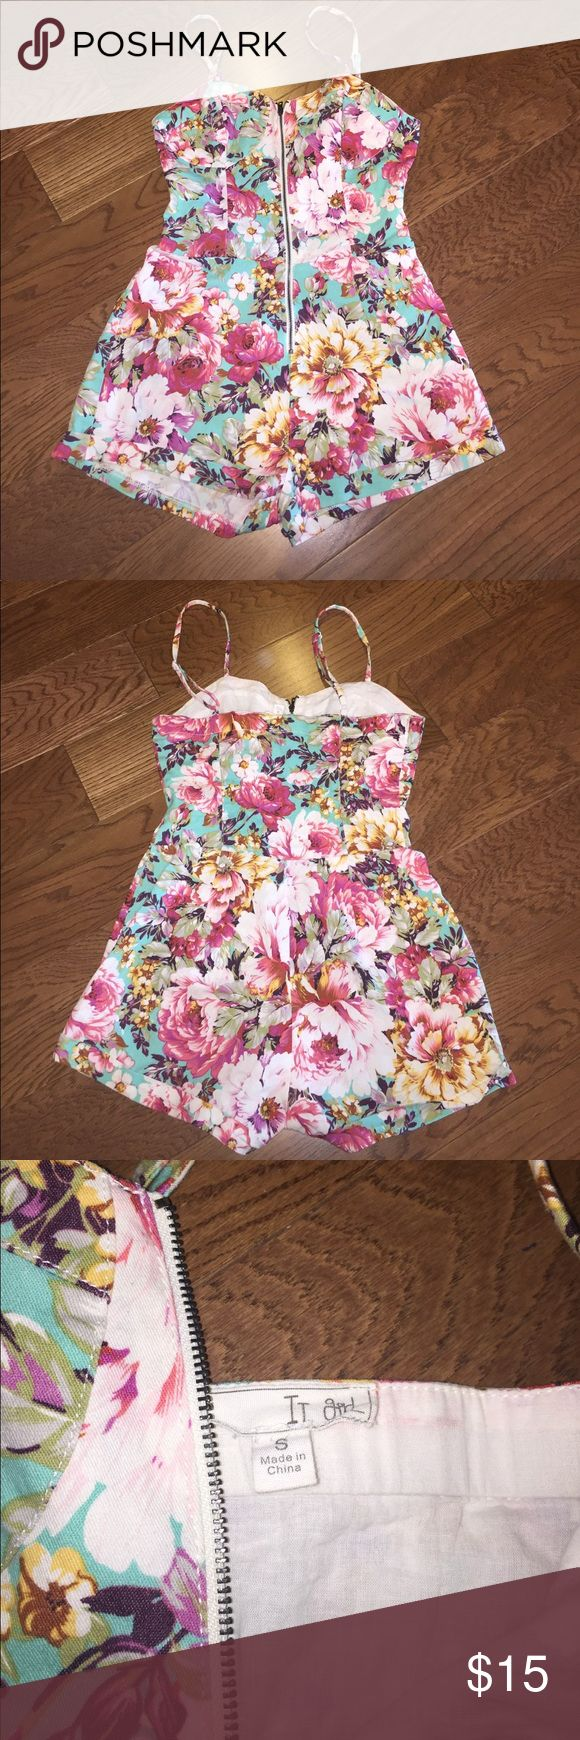 Floral zip up romper🌺🌸🌷🌹 super cute floral zip up romper! worn once but too small, says size small but fits more like an xs. great condition 💗💕🍒 It Girl Pants Jumpsuits & Rompers